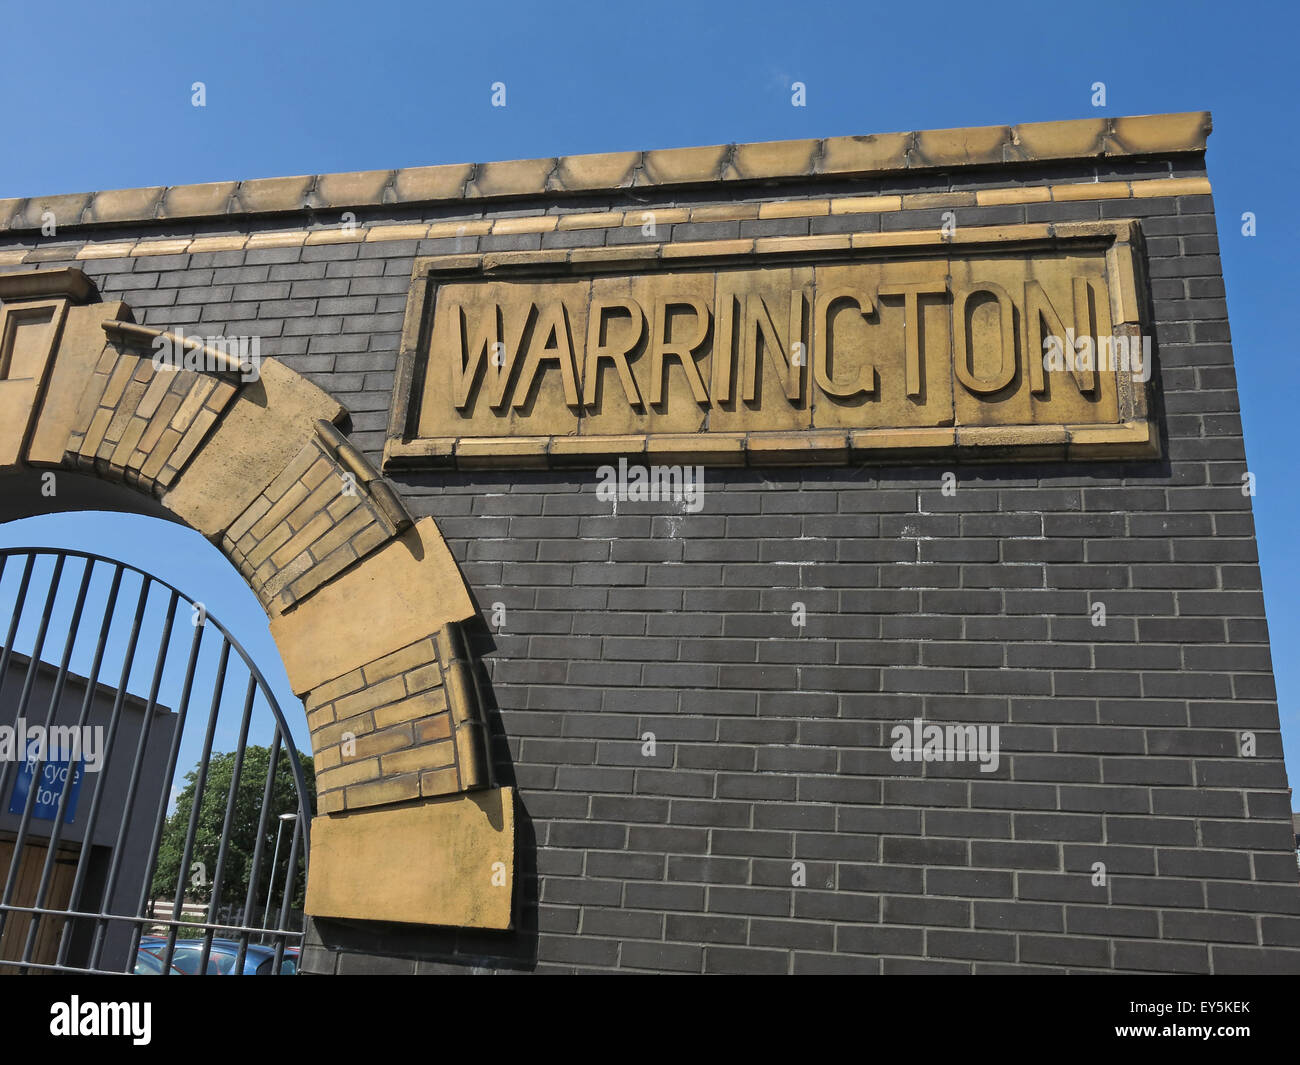 Bath St,Warrington Hospitals NHS Trust,Cheshire,England,UK - Stock Image